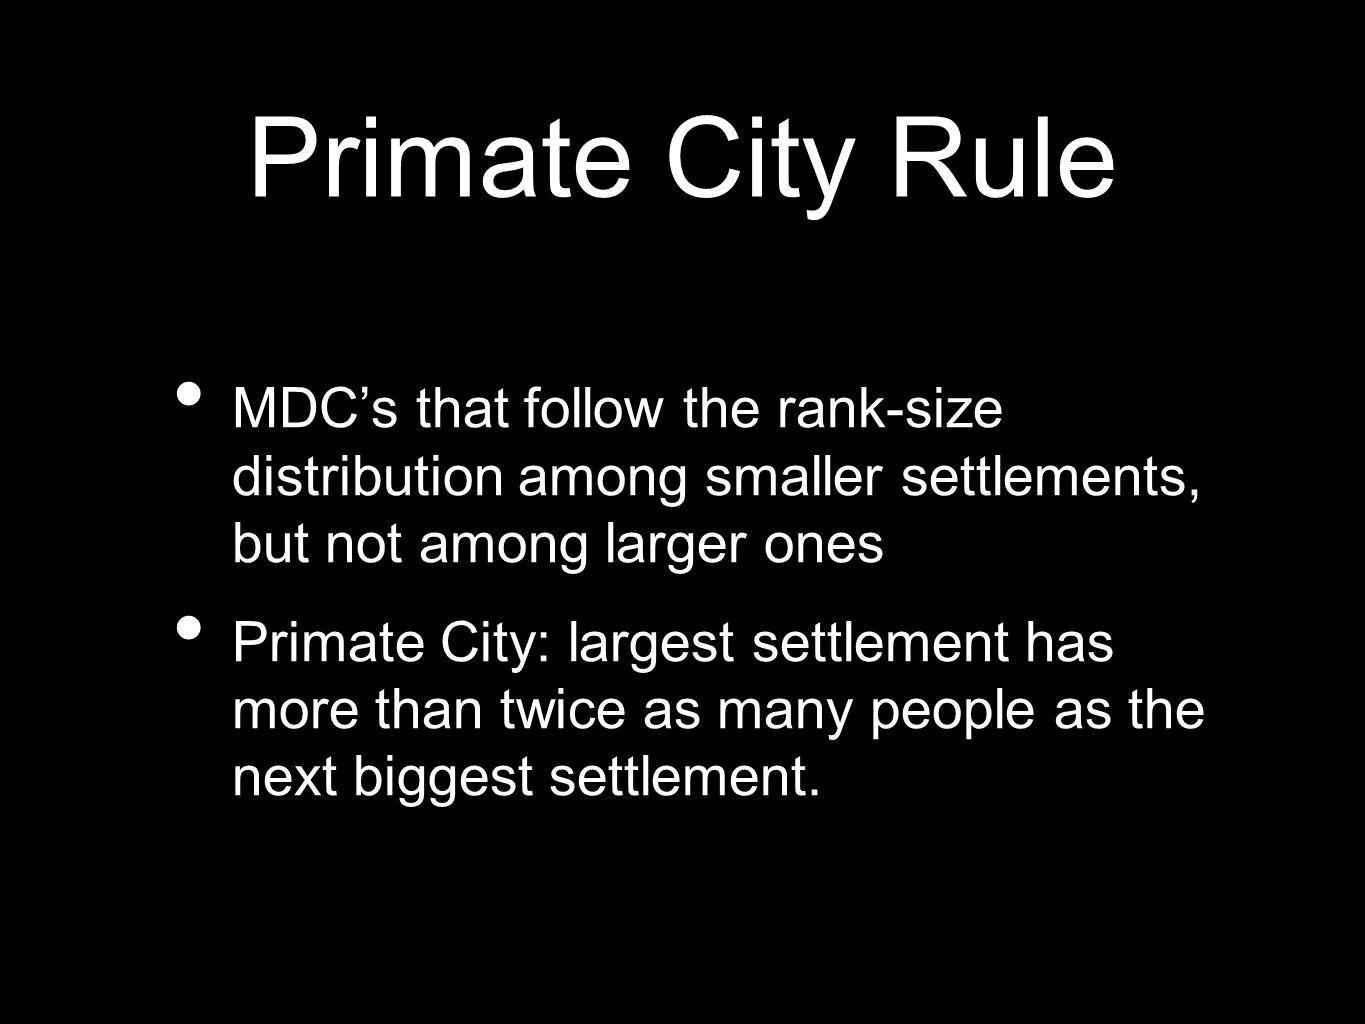 Primate City Rule MDC's that follow the rank-size distribution among smaller settlements, but not among larger ones.